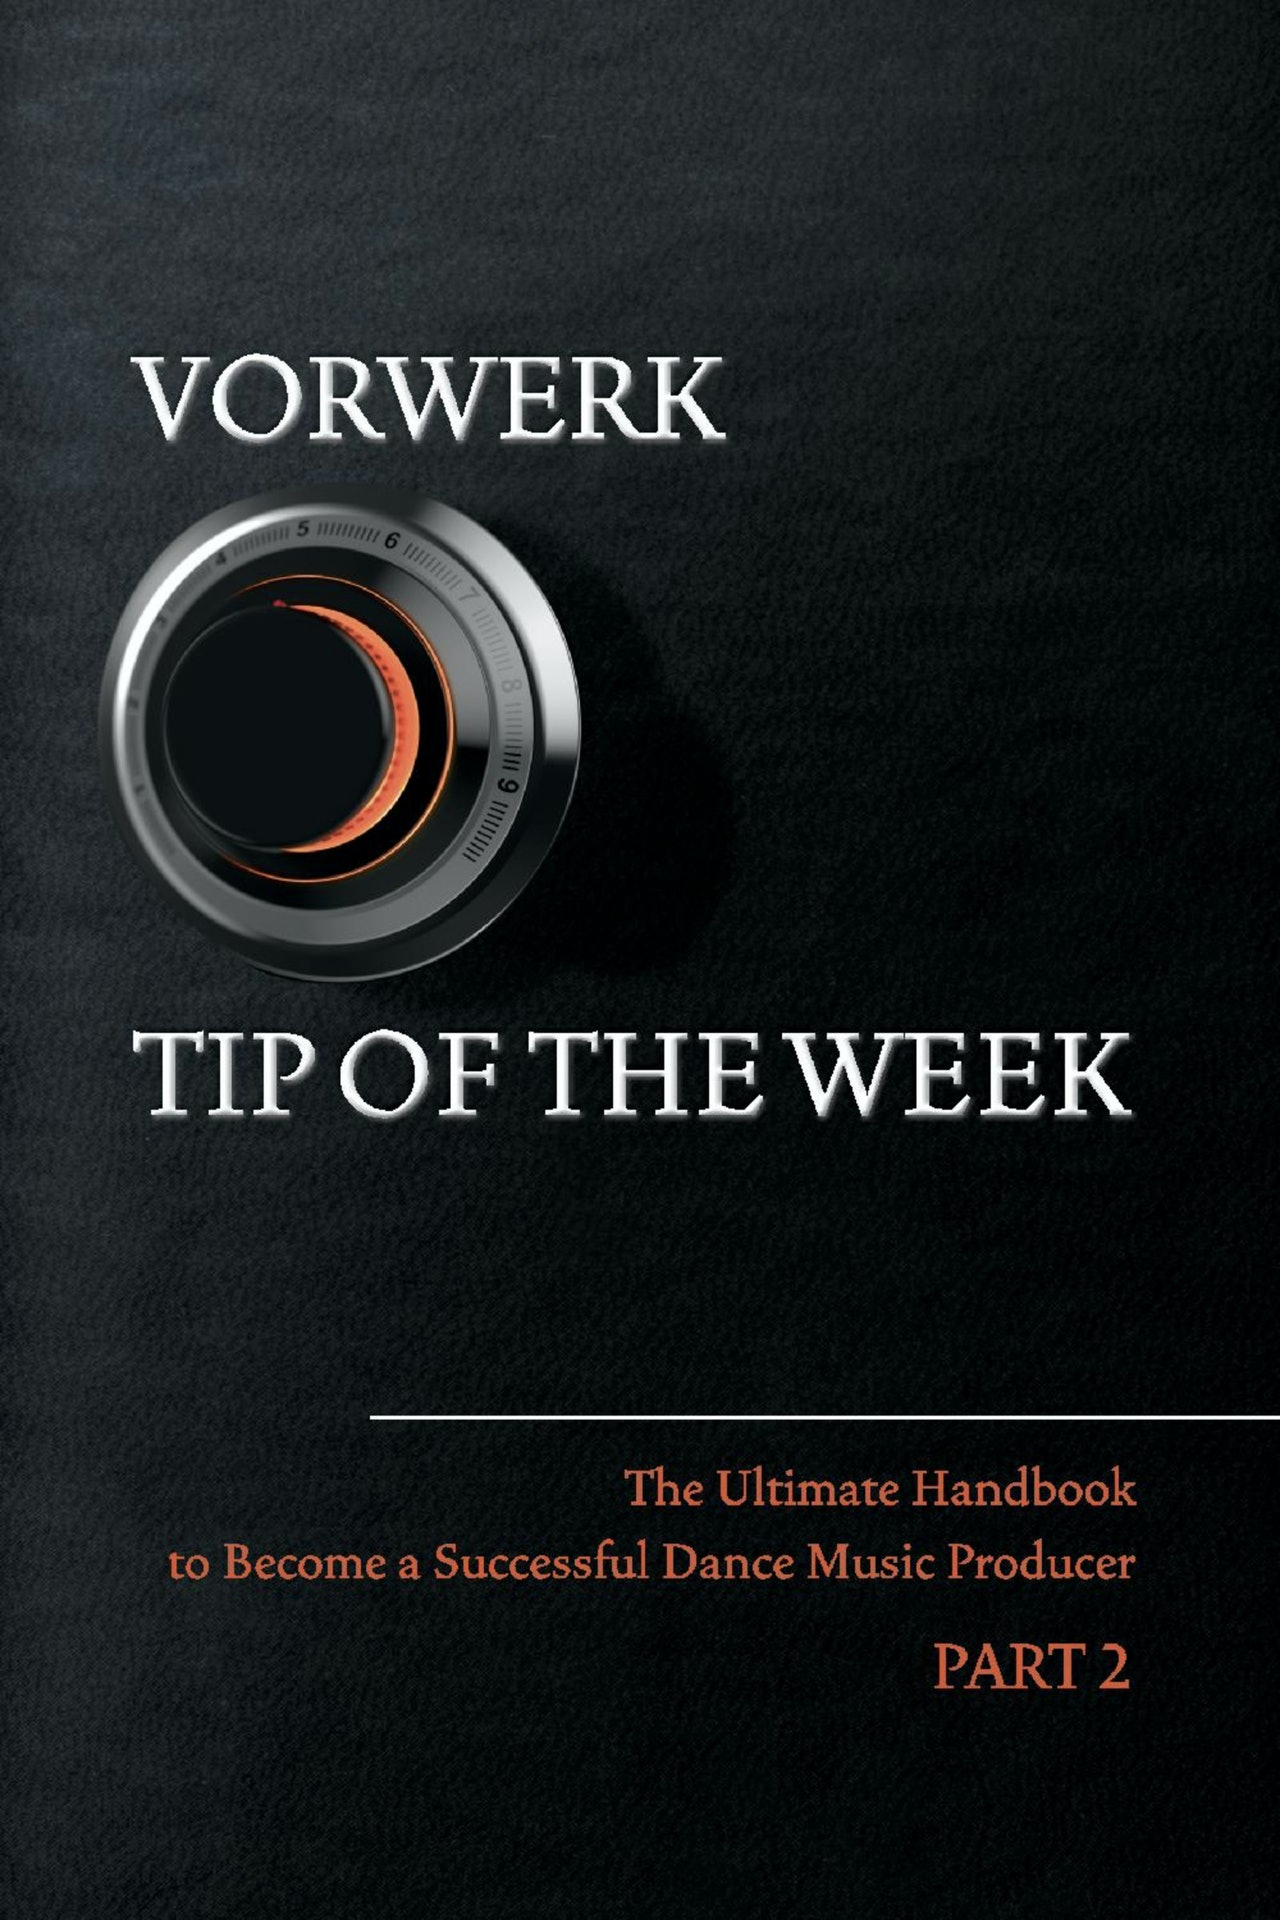 Vorwerk Tip Of The Week Part 2